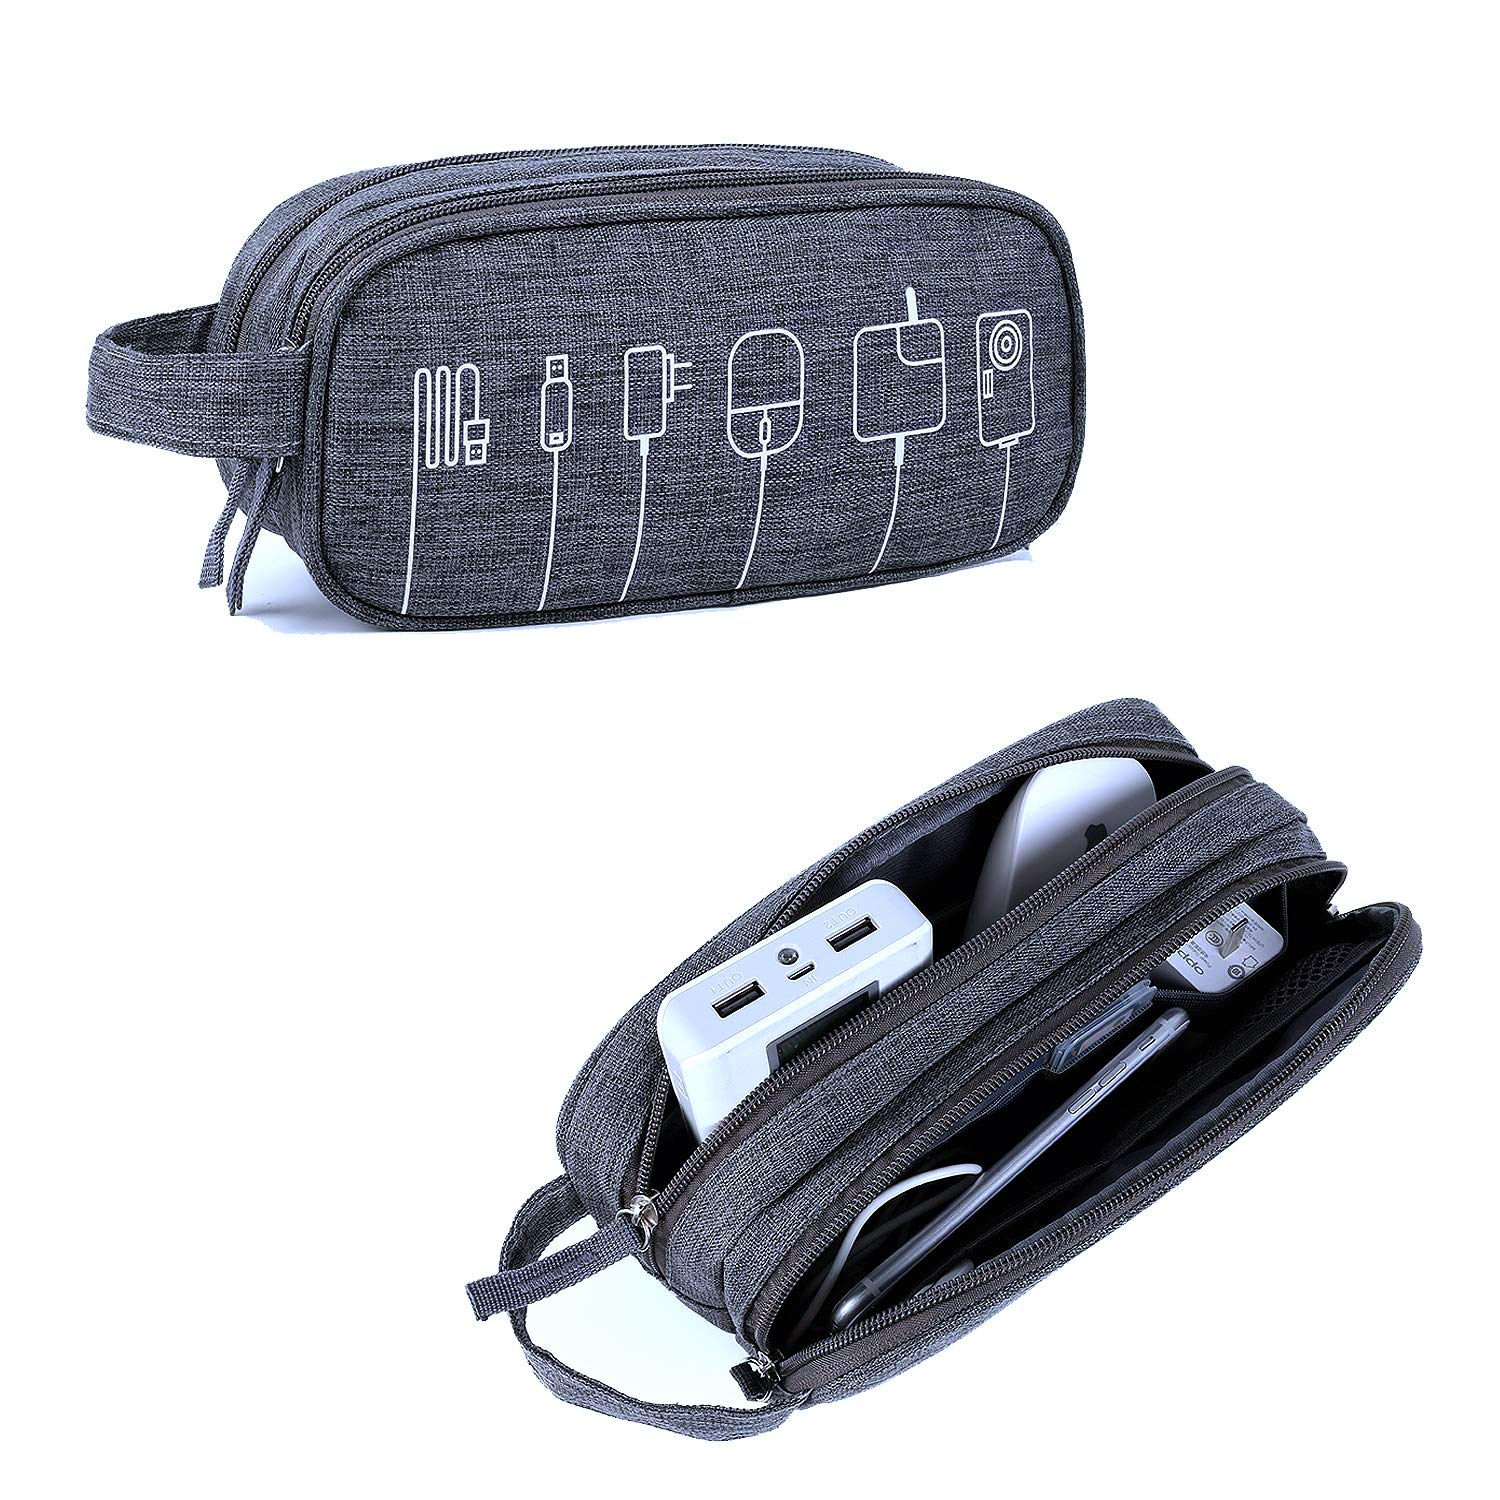 Cable Organizer Bag Computer Accessories Case Travel Accessory Organizer for Various USB, Phone, Charger and Cable